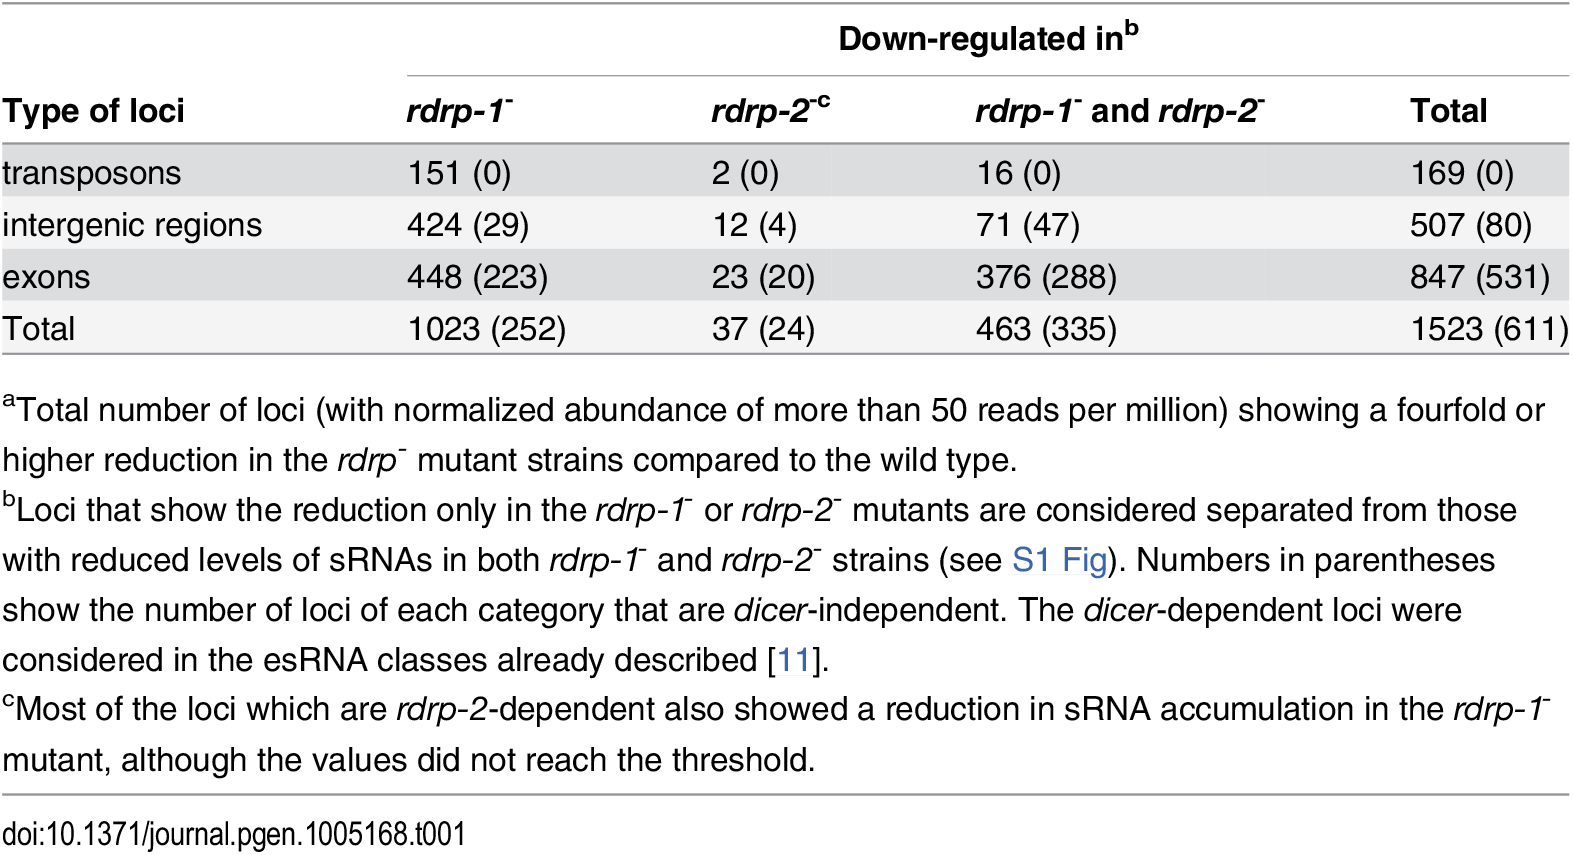 Number of loci down-regulated at sRNA level in <i>rdrp-1</i><sup>-</sup> and <i>rdrp-2</i><sup>-</sup> mutants<em class=&quot;ref&quot;><sup>a</sup></em>.